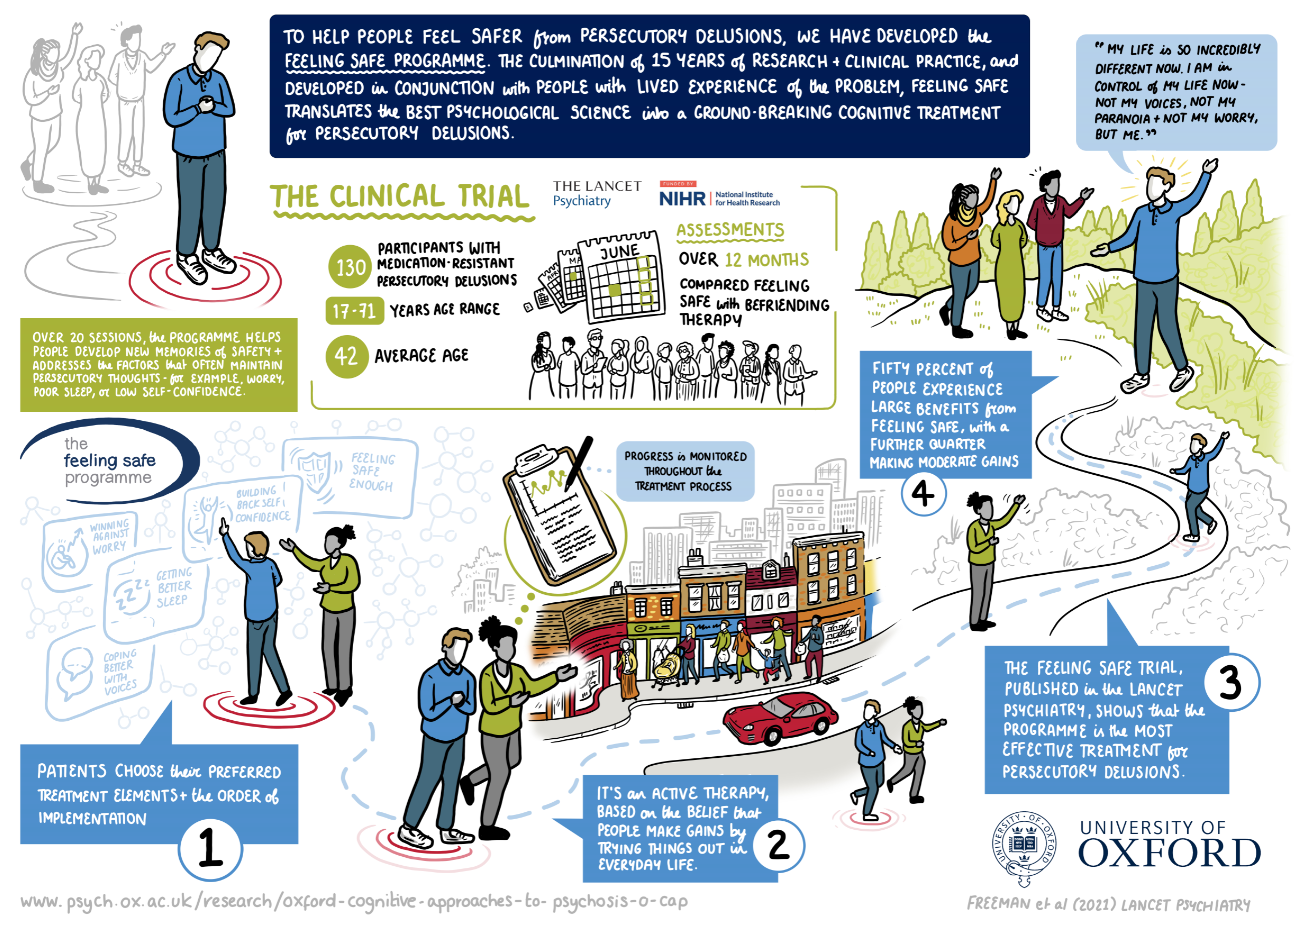 To help people feel safer from persecutory delusions we have developed the Feeling Safe Programme. The culmination of 15 years of research and clinical practice and developed in conjunction with people with lived experience of the problem, Feeling Safe translates the best psychological science onto a ground-breaking cognitive treatment for persecutory delusions. The Clinical Trial  130 Participants with medication resistant persecutory delusions  17-71 years age range  42 average age Assessments  Alternative text for image: Month view calendar pages with one date a month blocked out to represent appointments and the passing of time, and a line of people to represent patients.  Over 12 months  Compared Feeling Safe with Befriending Therapy     Over 20 sessions, the programme helps people develop new memories of safety and addresses the factors that often maintain persecutory thoughts – for example, worry, poor sleep, or low self-confidence.  Alternative text for image: The patient (identifiable as the patient by the red target they are standing on) has their head down and hands clasped, looking worried, whilst three people standing behind them (in grey scale) appear to be talking and gesticulating in the direction of the patient.     1: Patients choose their preferred treatment elements and the order of implementation.  Alternative text for image: A therapist is standing next to the patient guiding them to choose their preferred treatment elements. The treatment elements are represented as boxes on a touch screen wall. The elements/boxes the patient can choose from are 'Winning Against Worry', 'Coping Better with Voices', 'Getting Better Sleep', 'Building Back Self-Confidence', and 'Feeling Safe Enough'. The patient is selecting 'Building Back Self-Confidence'. There is a blue dashed line leading onto the next image/stage.     2: It's an active therapy, based on the belief that people make gains by trying things out in everyday life.  Alternative text for image: The 